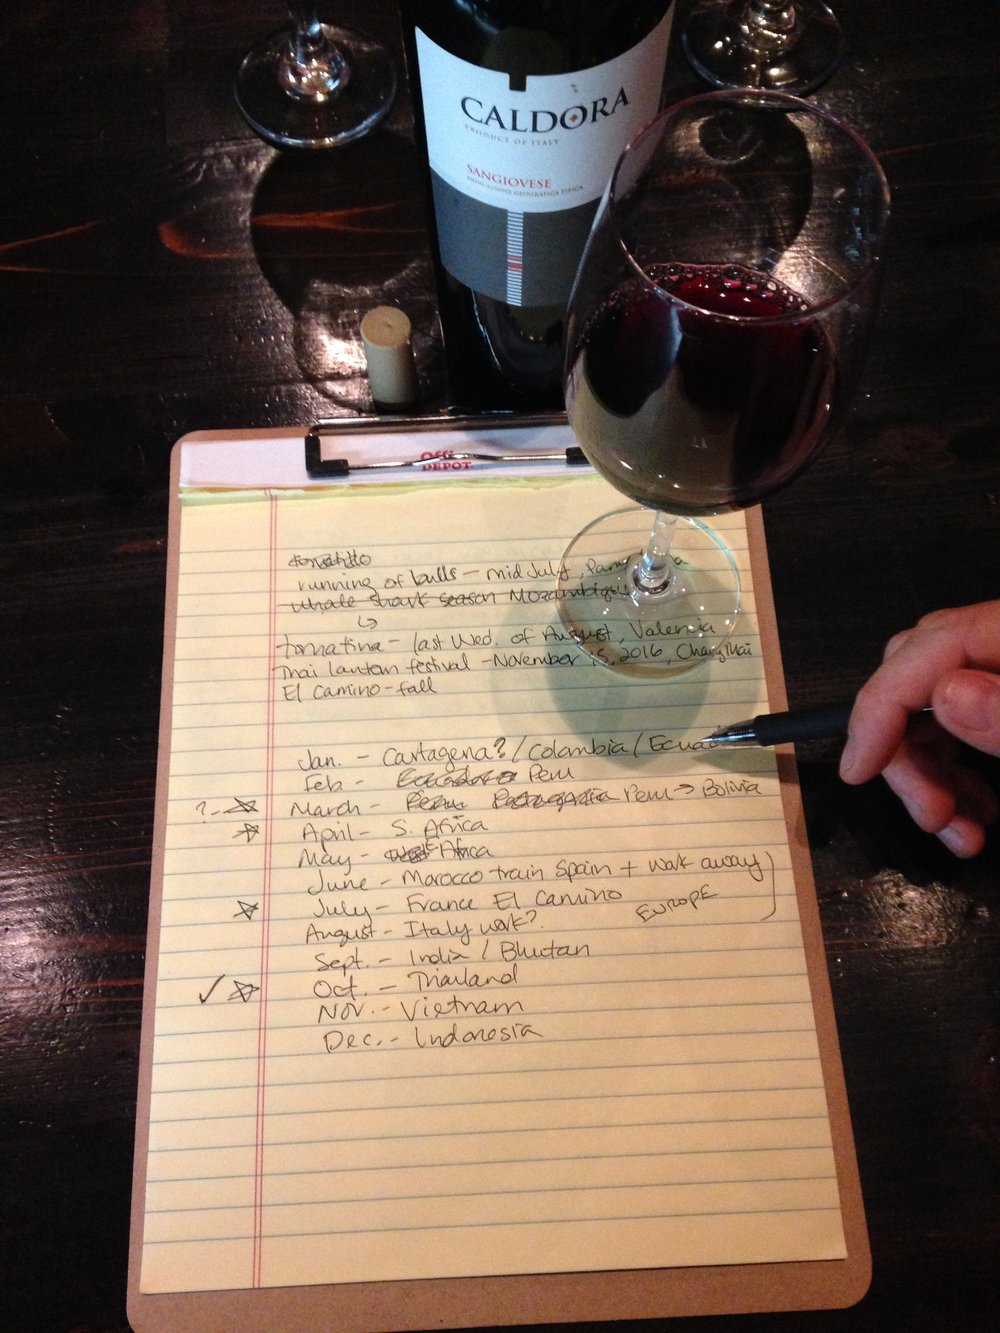 Trip planning at the wine bar near our apartment in Chicago.